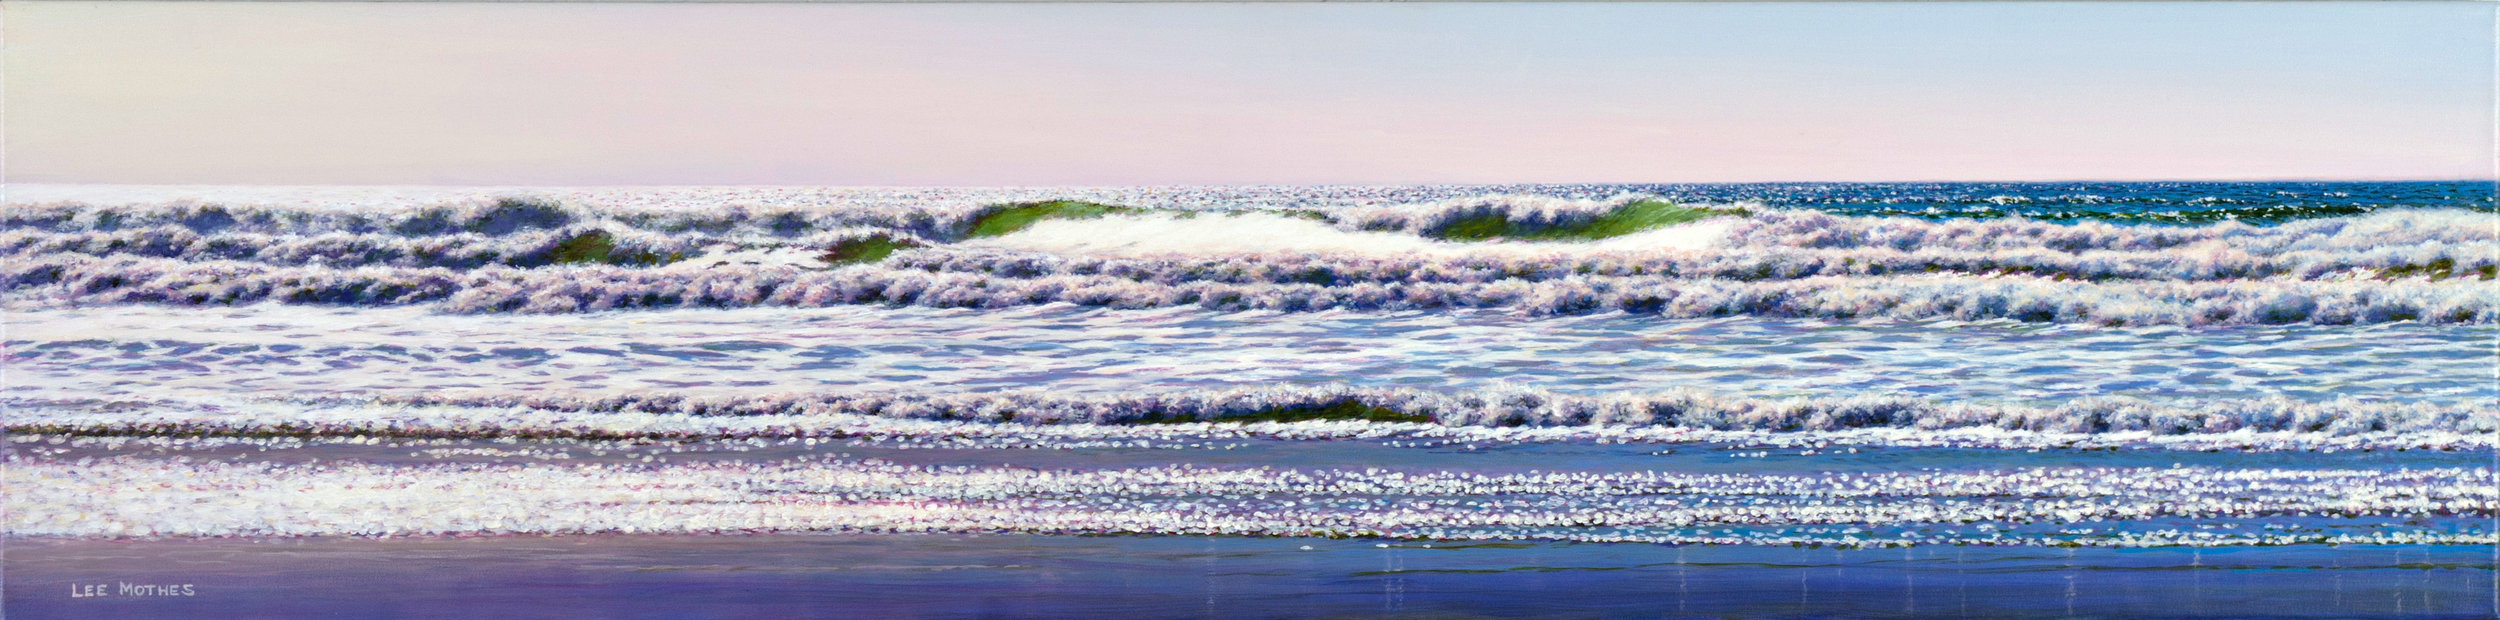 "Long Surf 10 - Oregon Coast,  12"" by 48"" acrylic on canvas  (sold)"